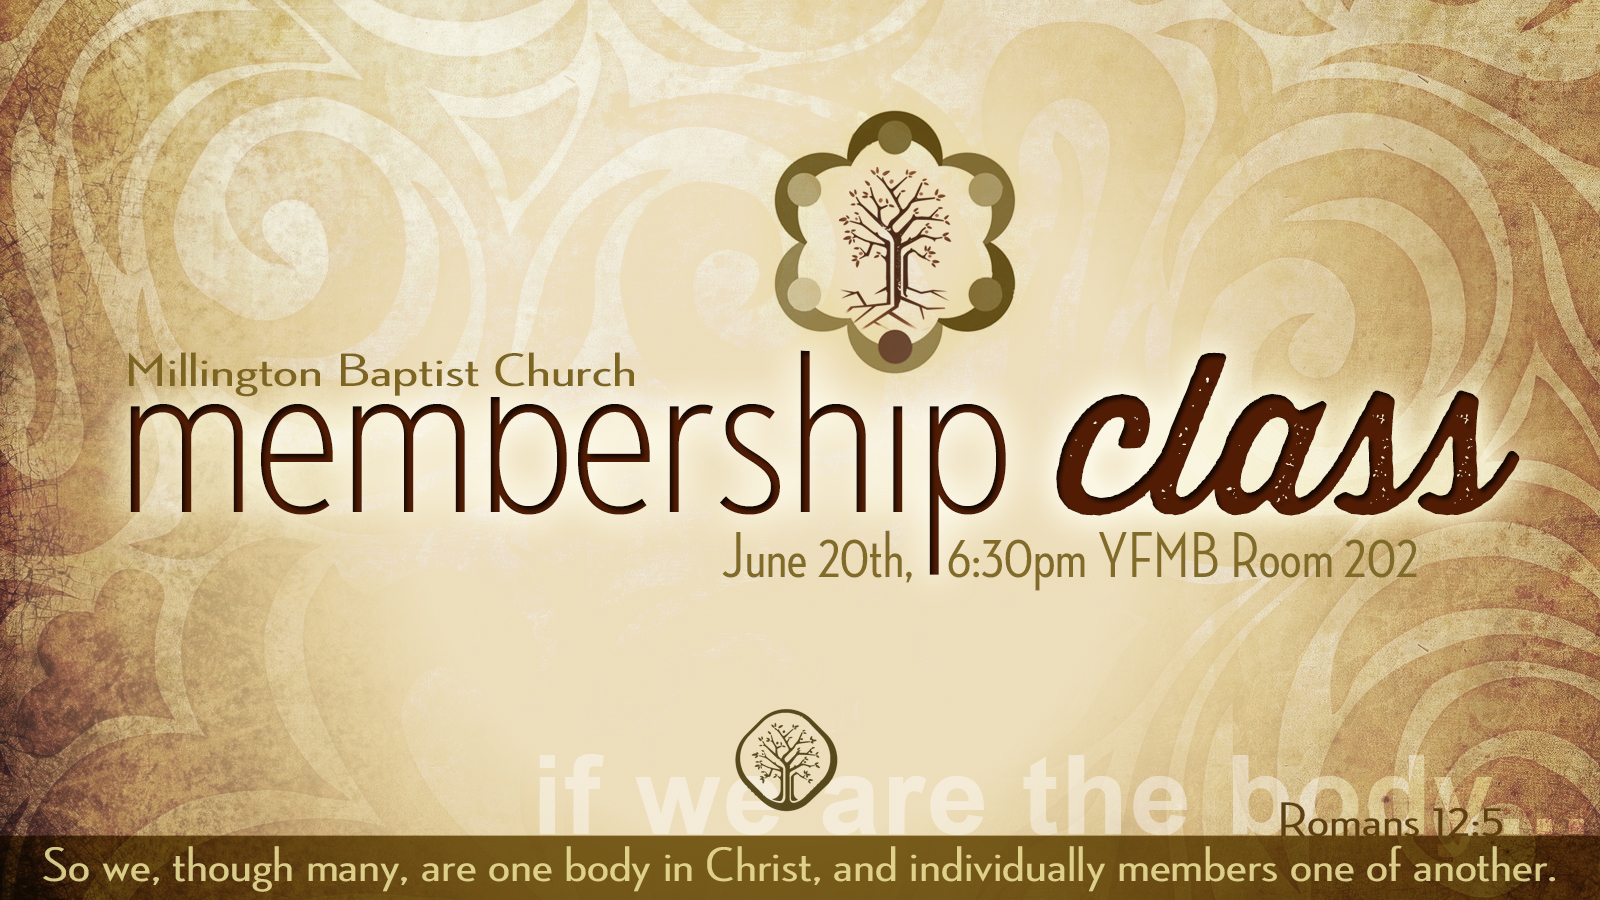 Membership class 16.9hd 2017 june 20